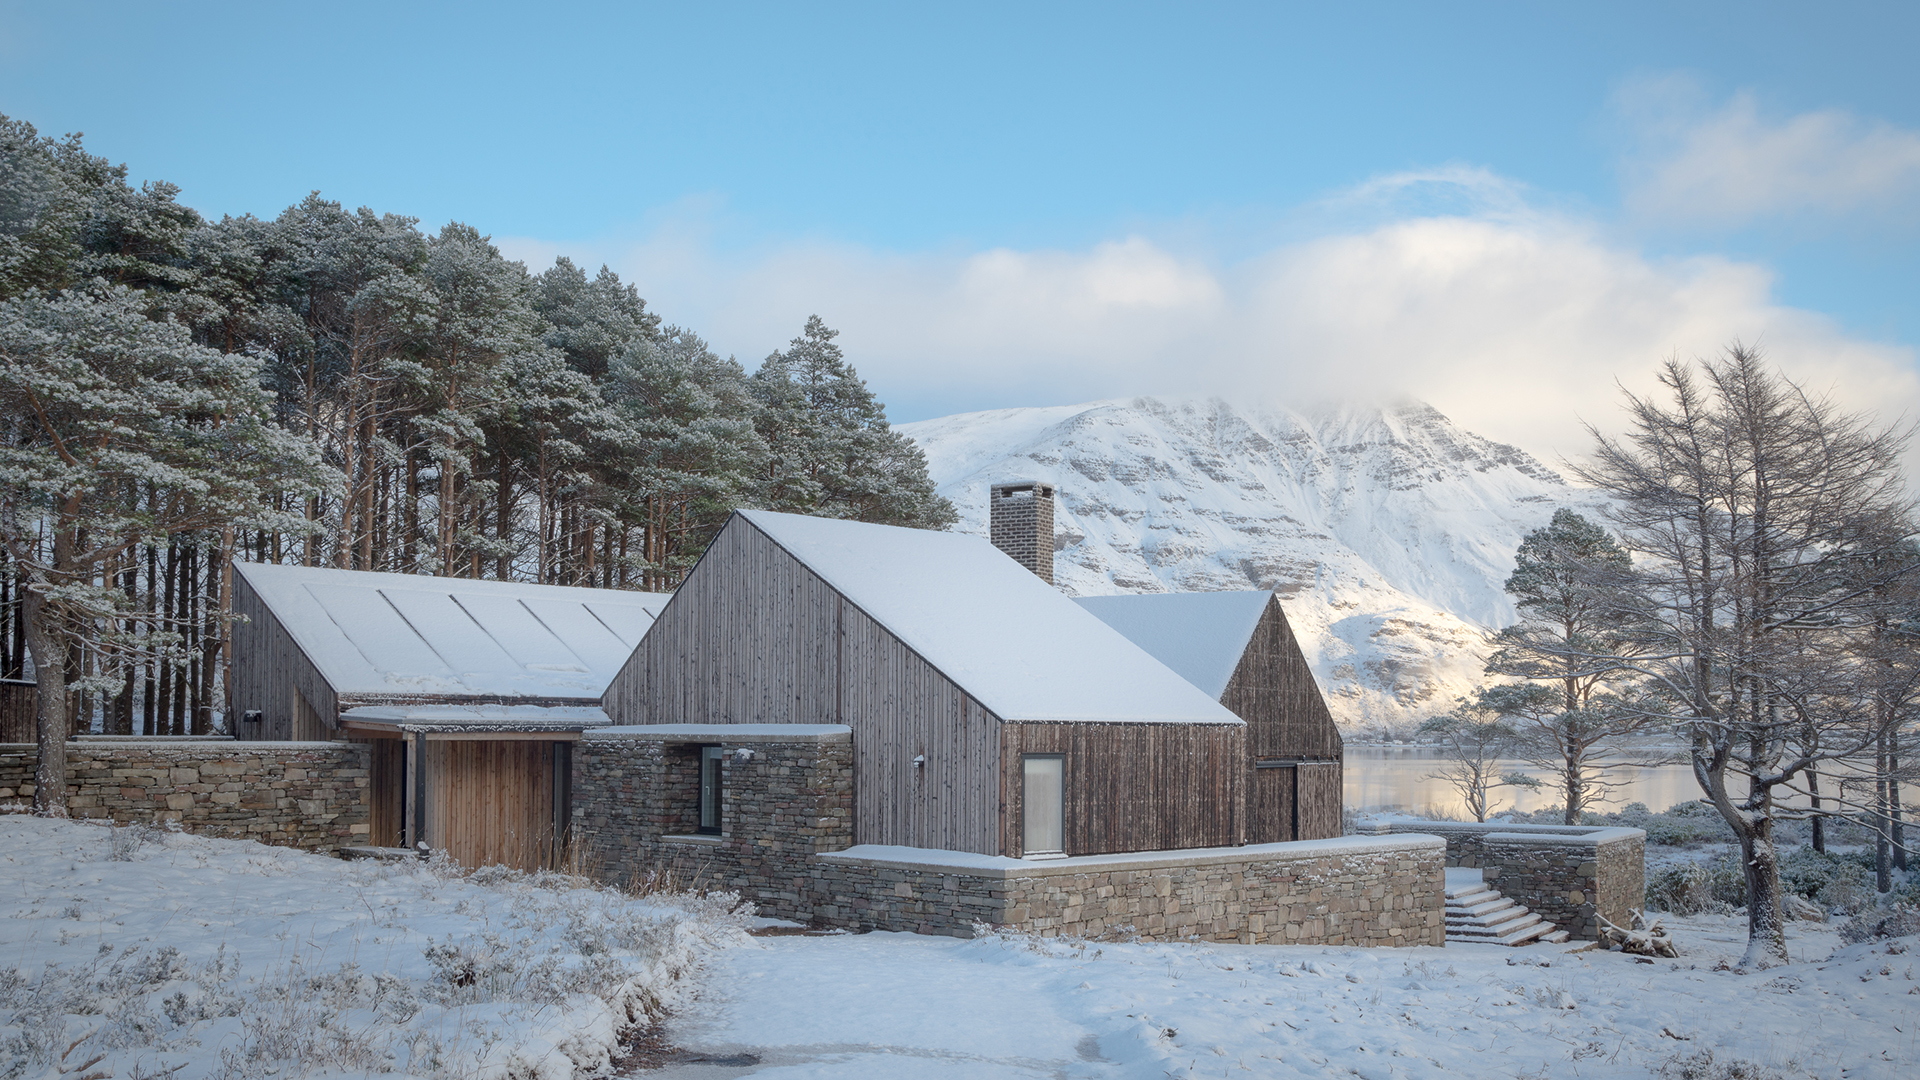 Remote off-grid Lochside House declared Britain's House of the Year